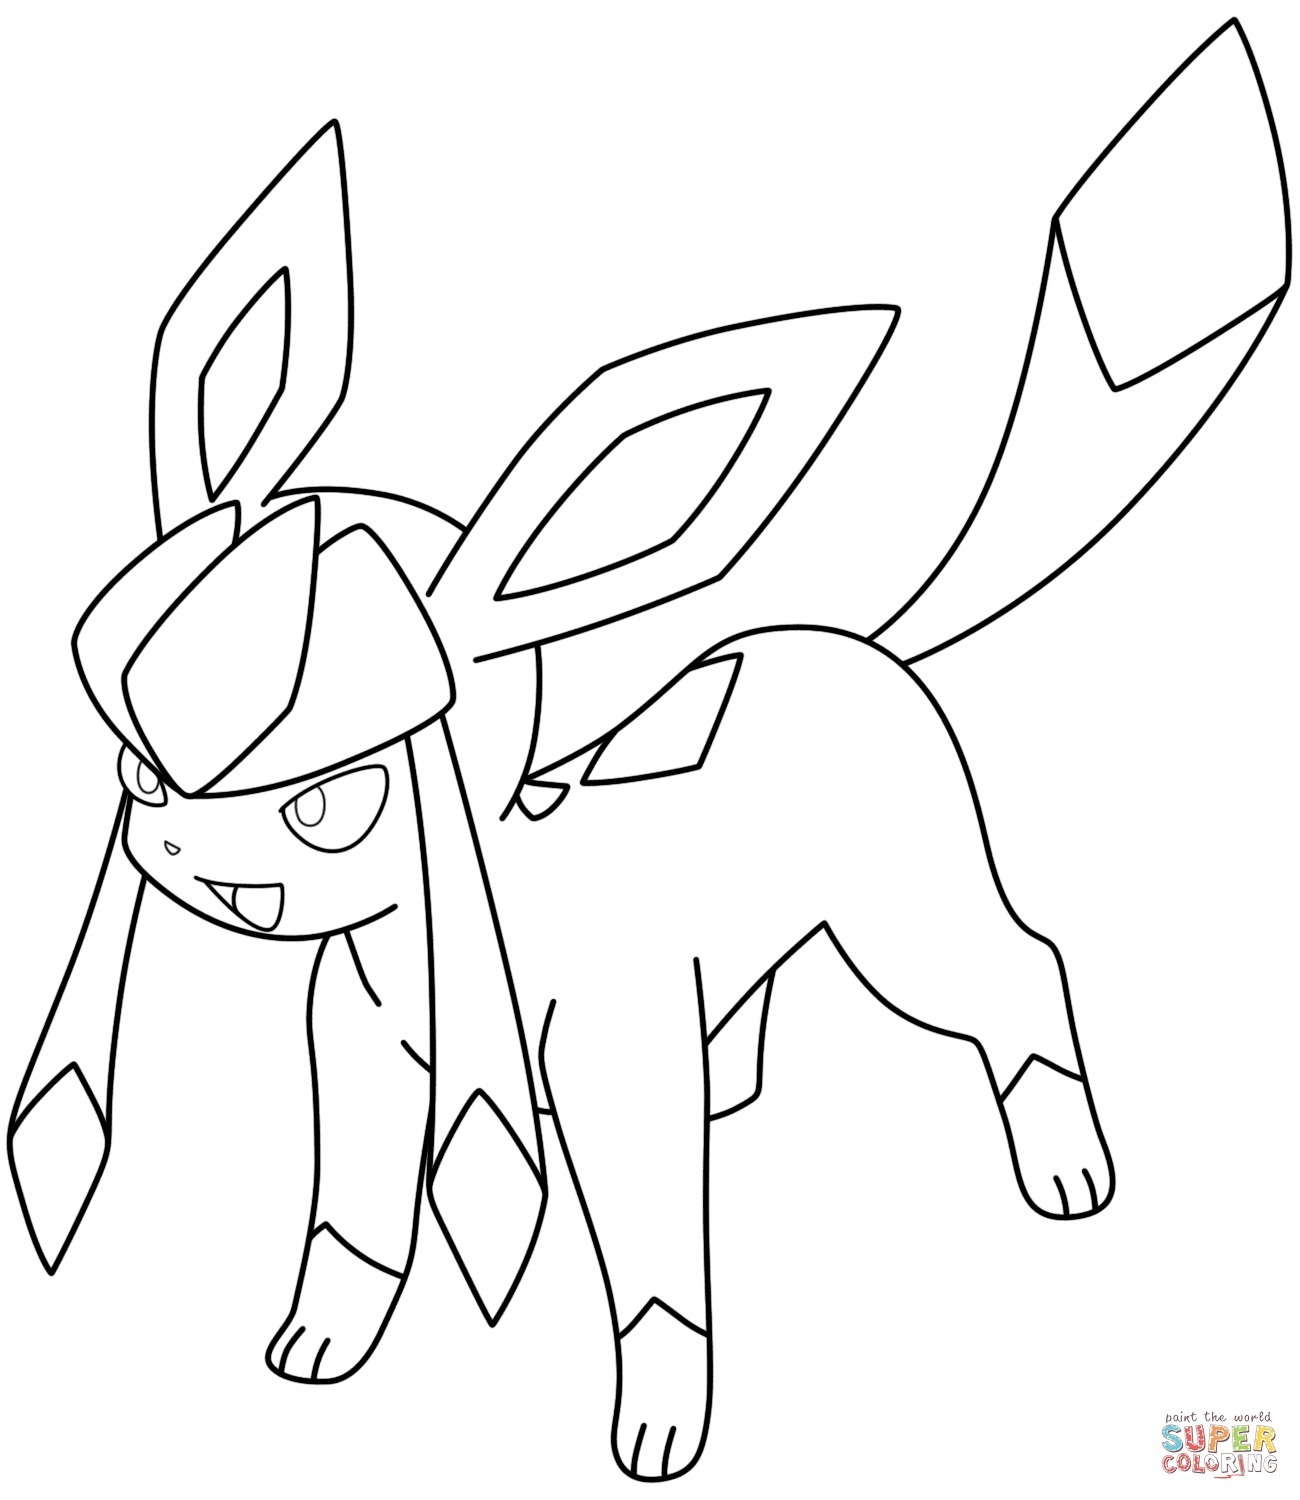 The Best Free Glaceon Coloring Page Images Download From 91 Free